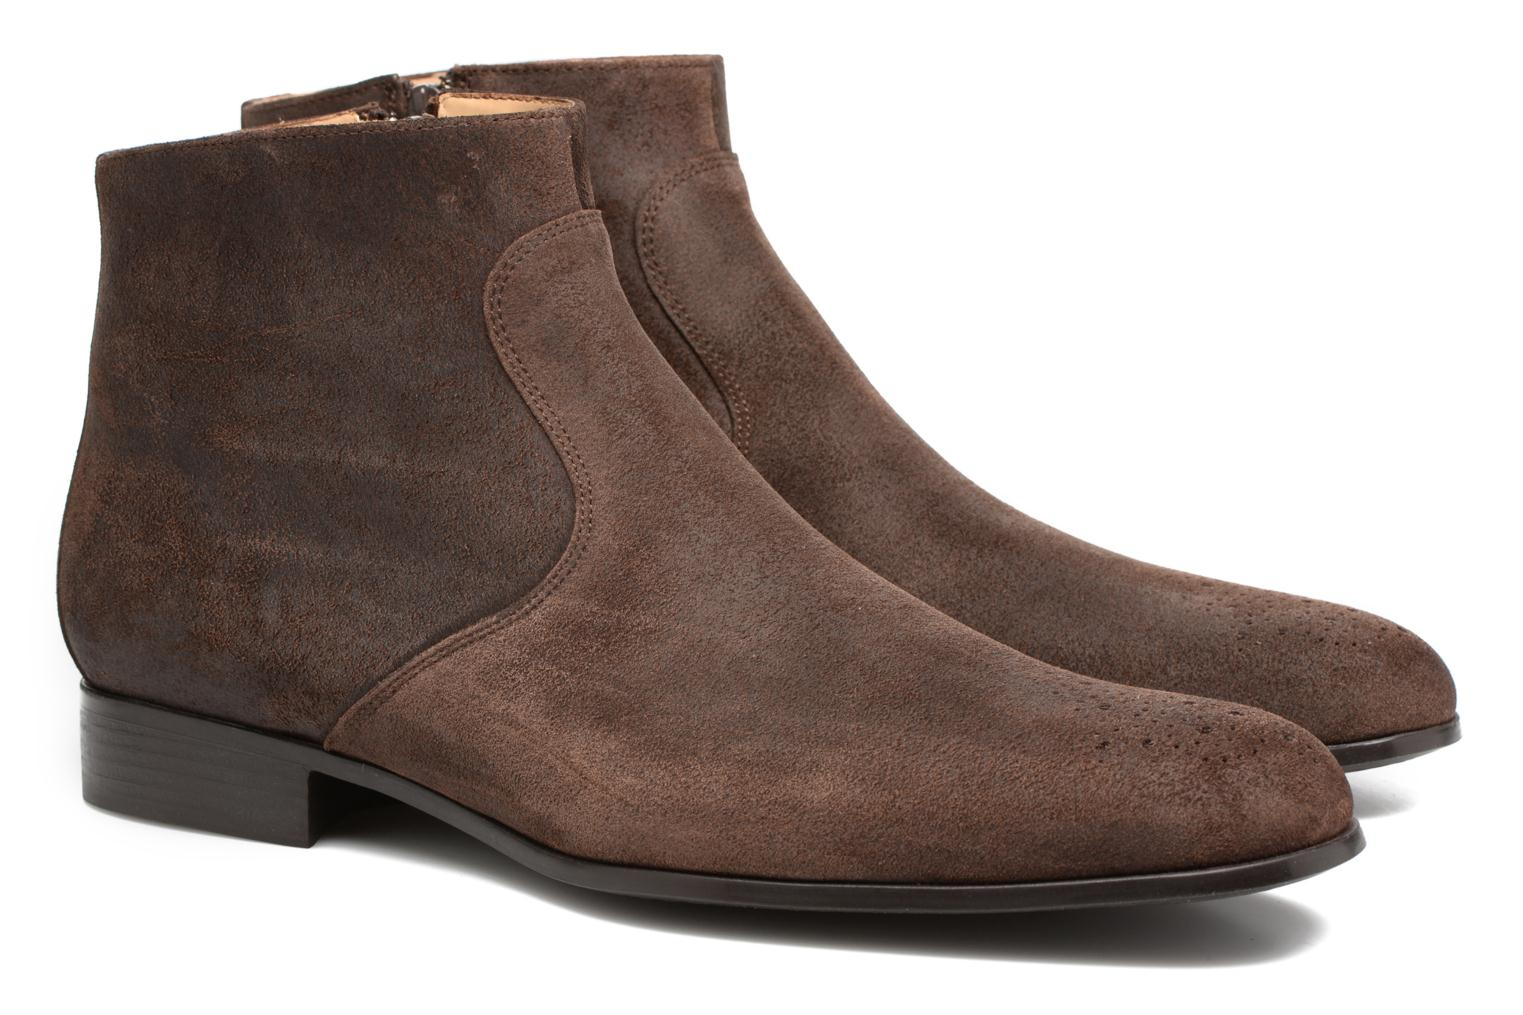 Rija Boots perfo Bronx light Marron foncé